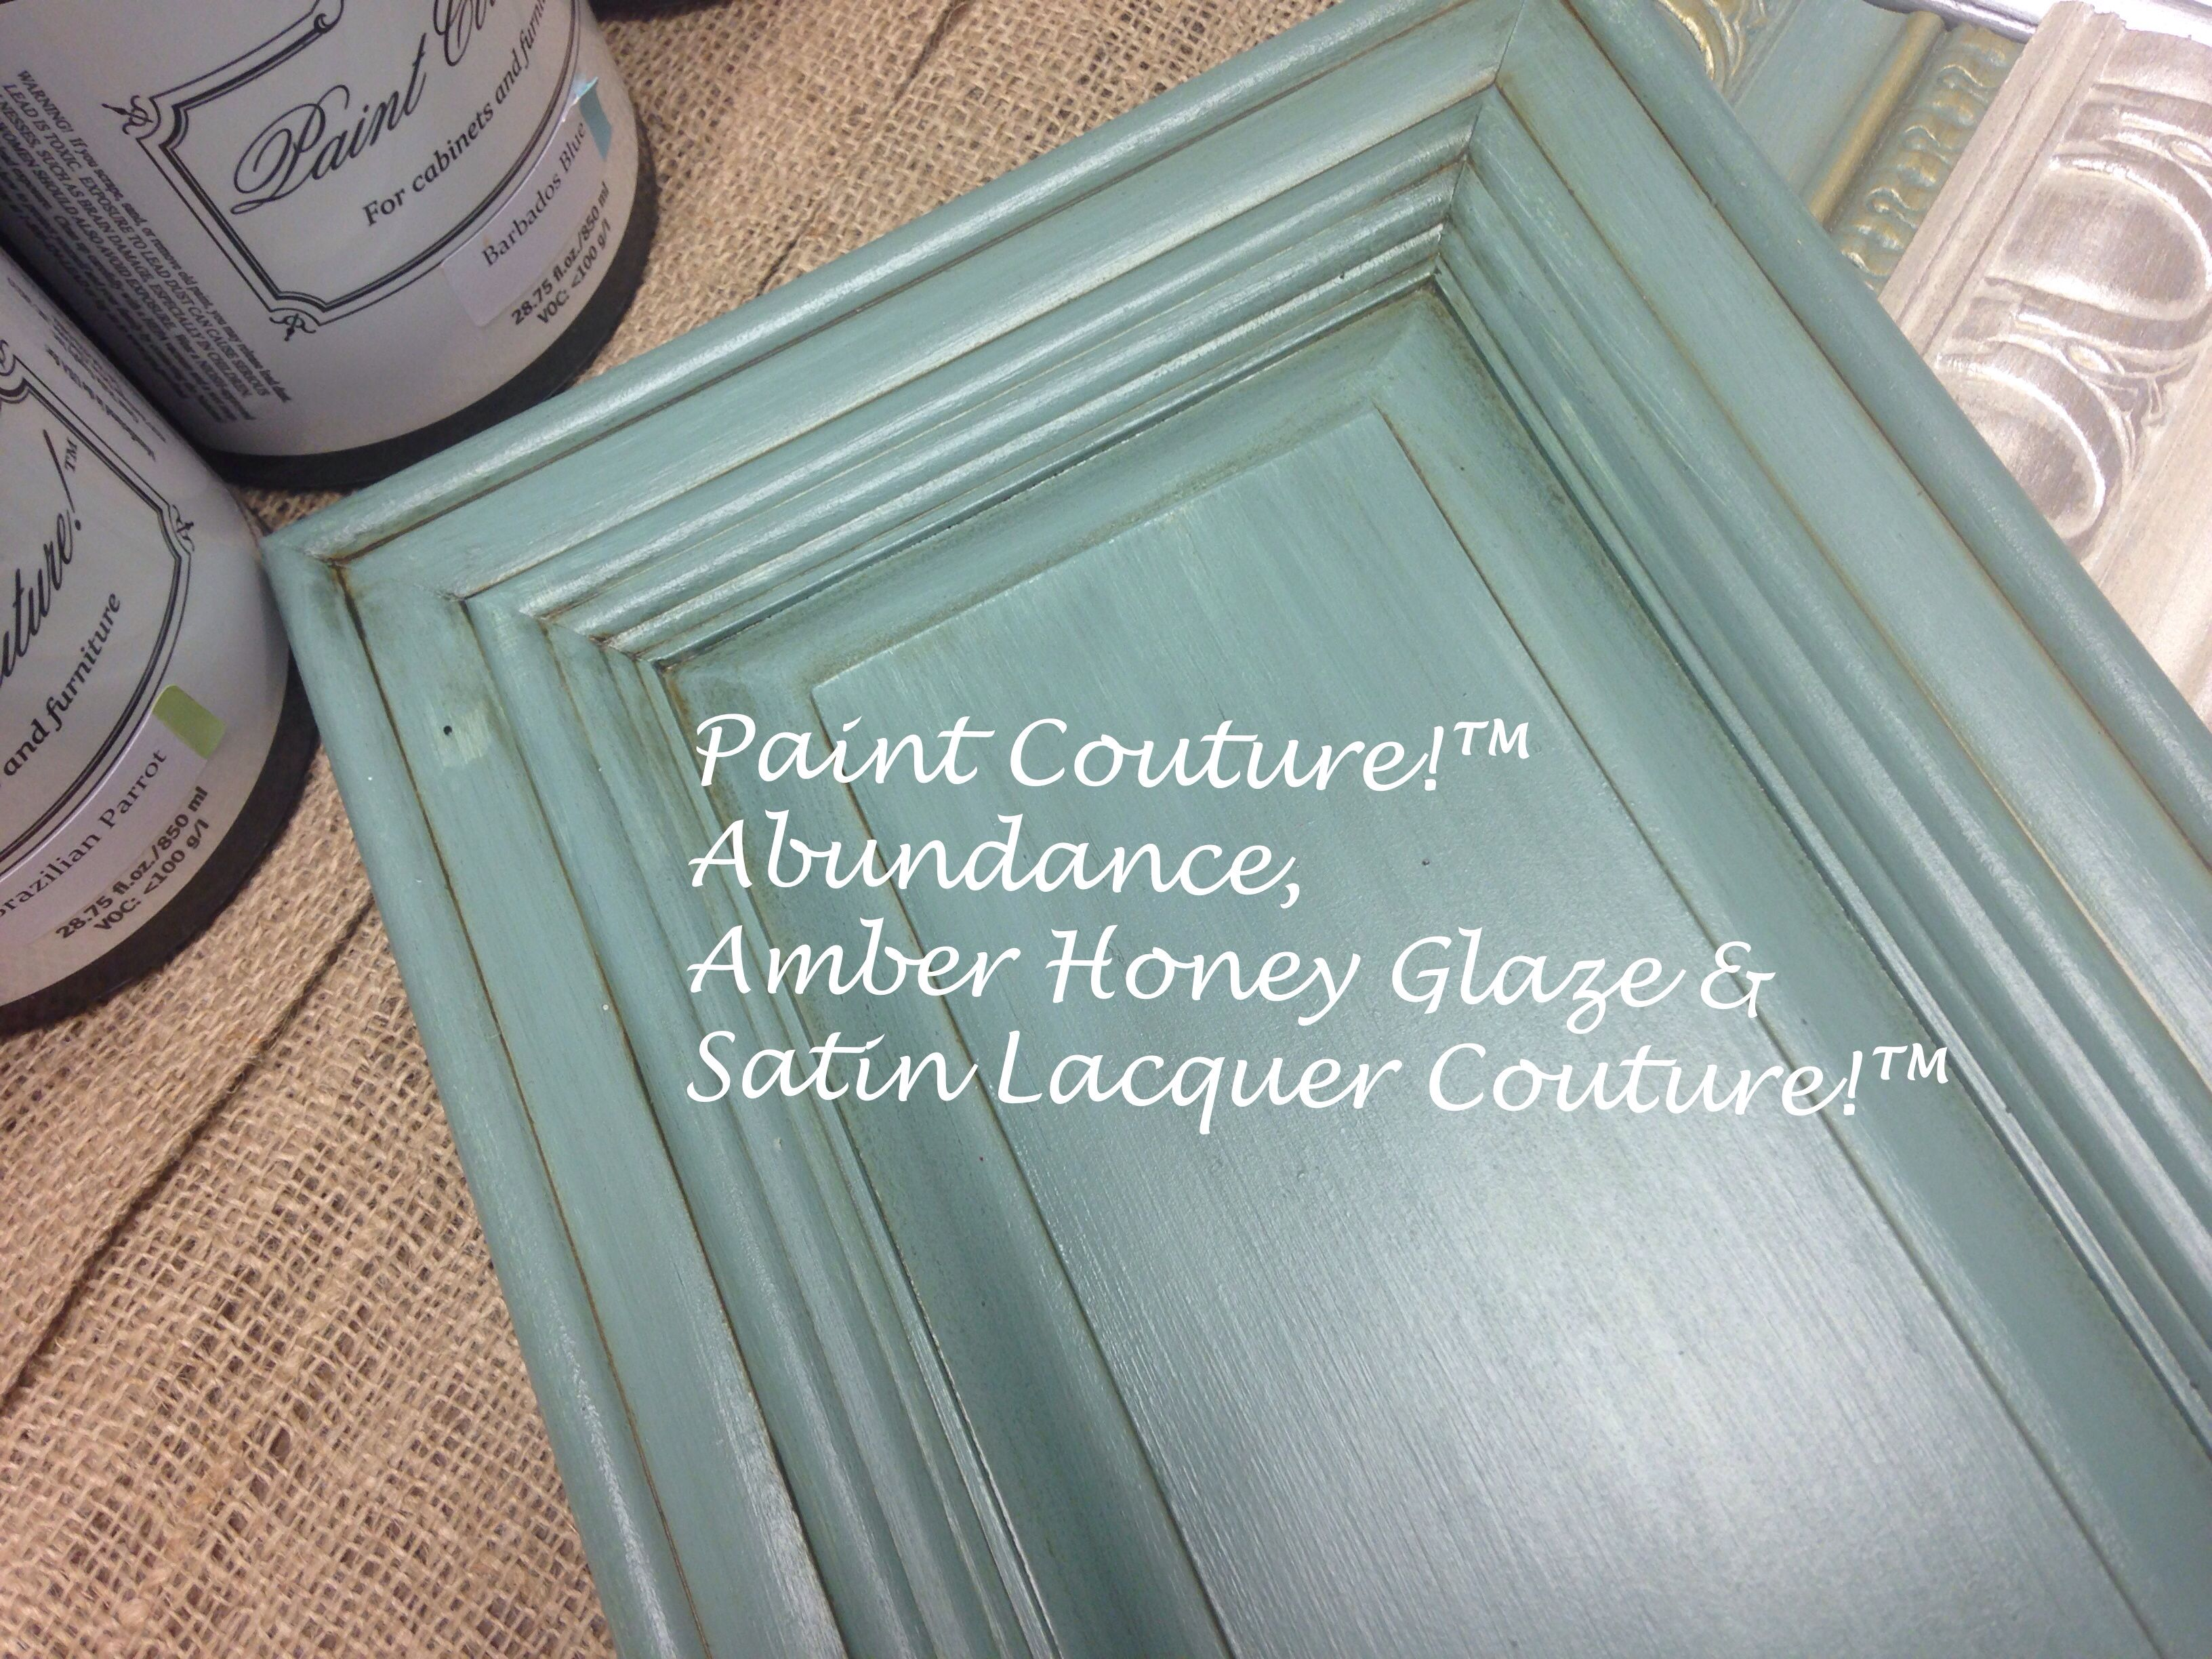 Satin Lacquer Couture!(TM) topcoat, water based & brush able | Hand ...